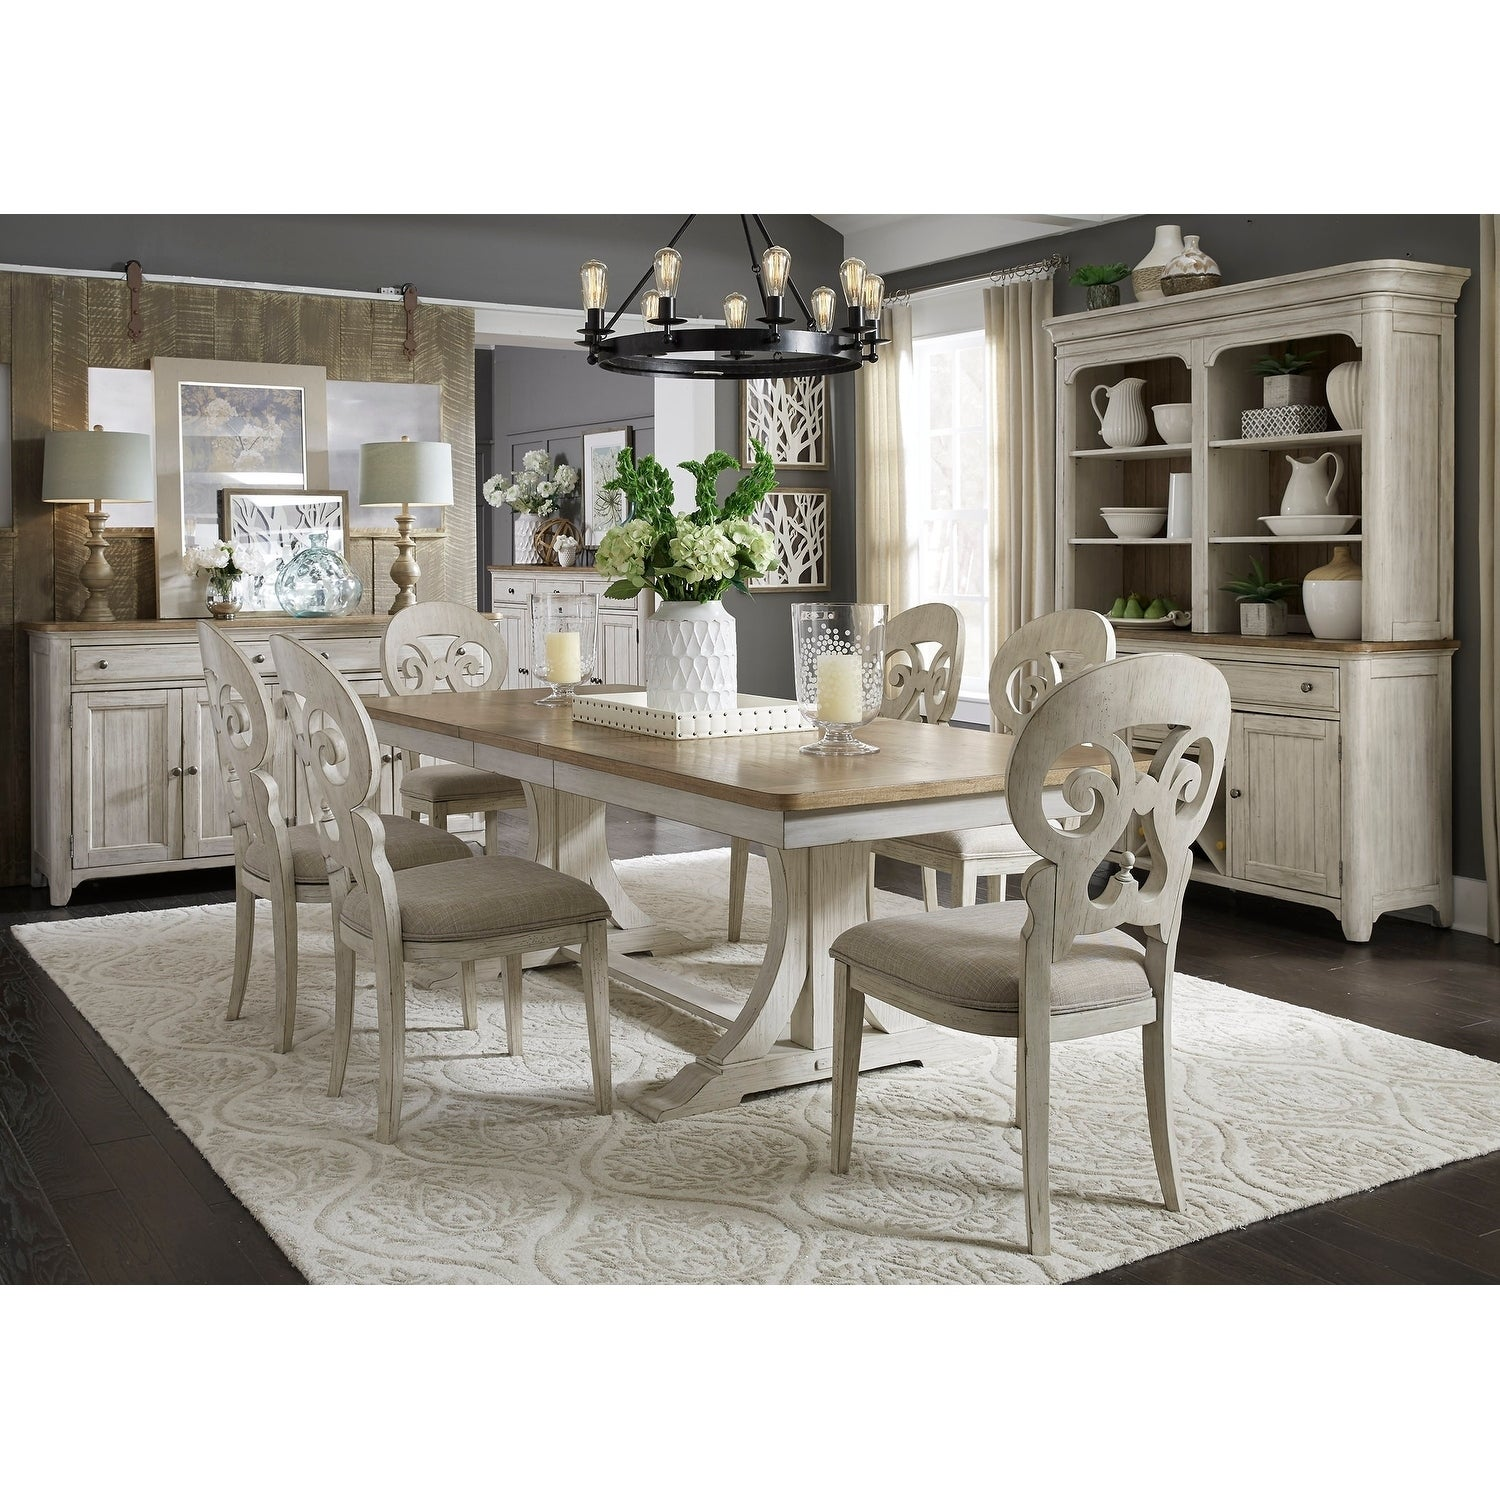 Farmhouse Reimagined Antique Two Toned 7 Piece Trestle Table Dining Set Overstock 18620076